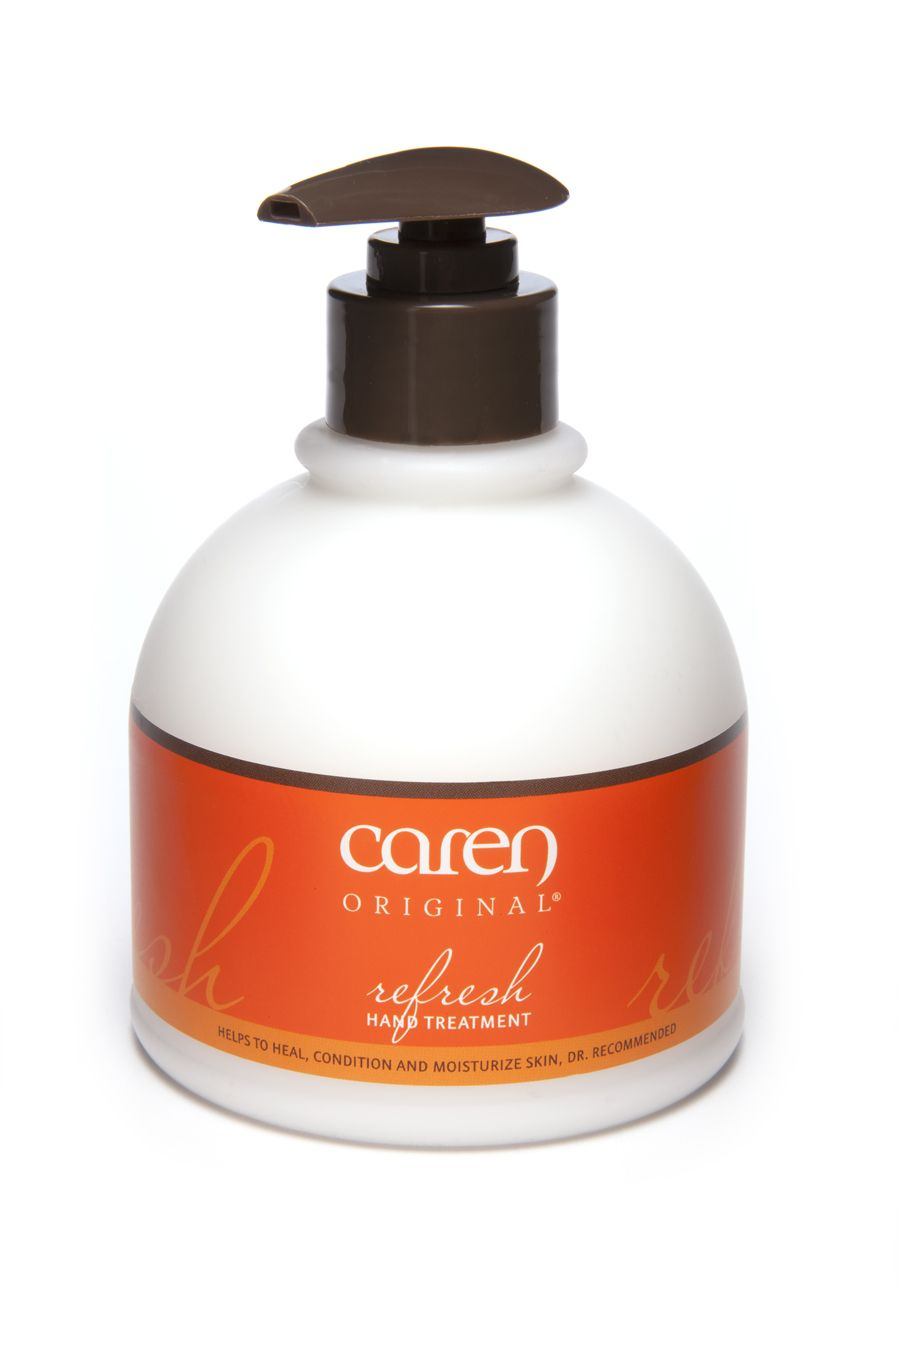 Hand Treatment - Refresh. www.carenproducts.com